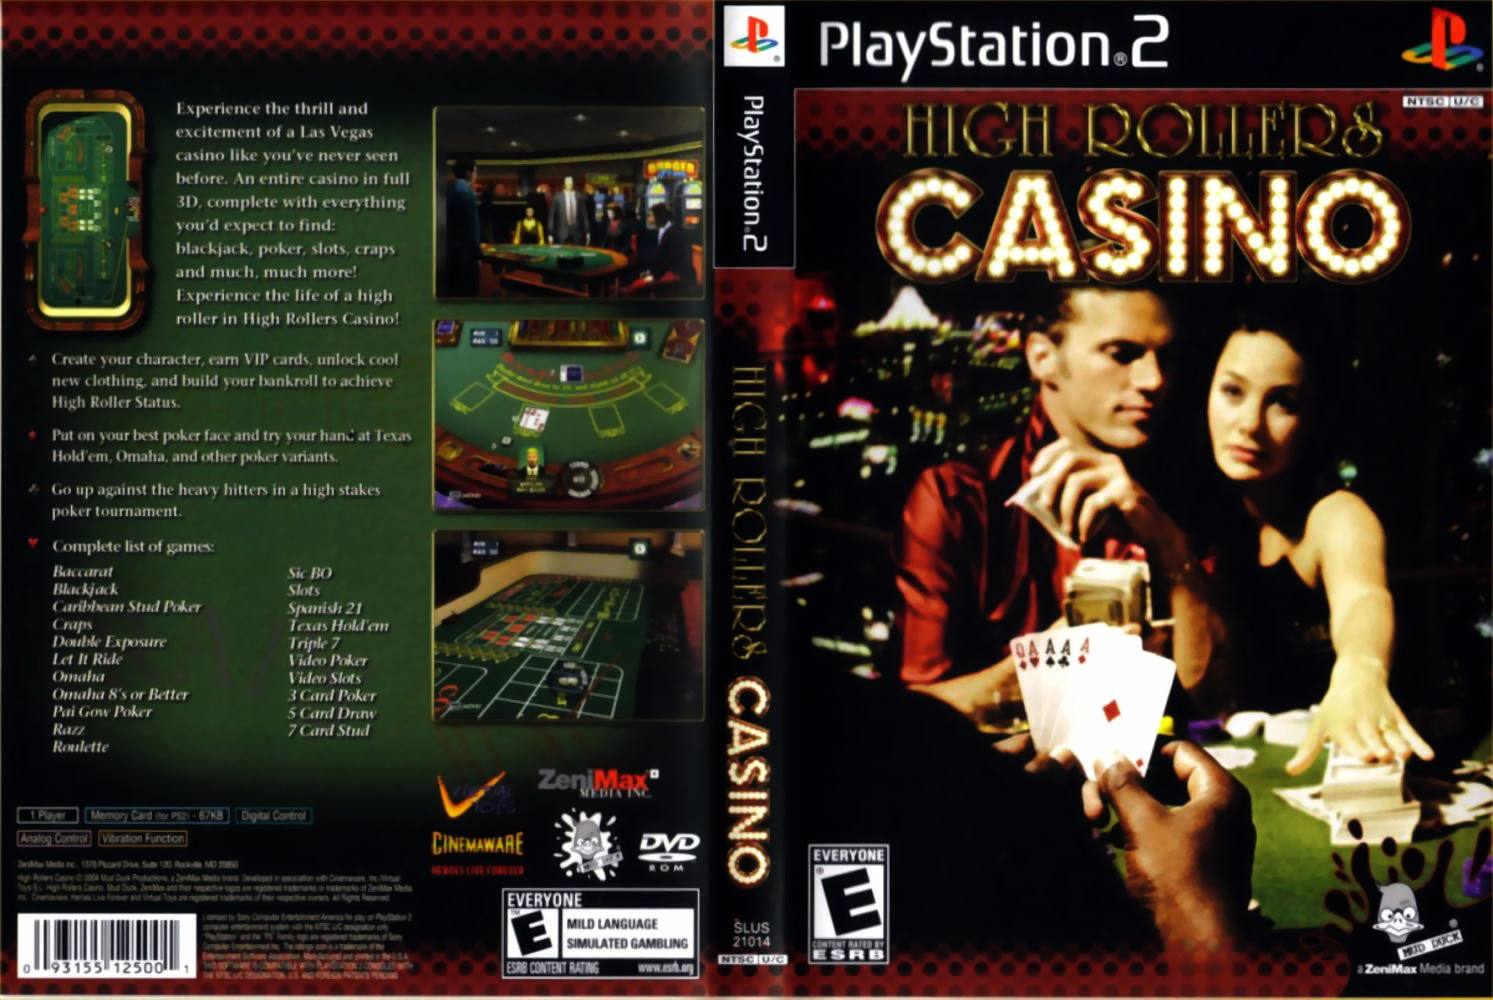 casino movie online free oneline casino